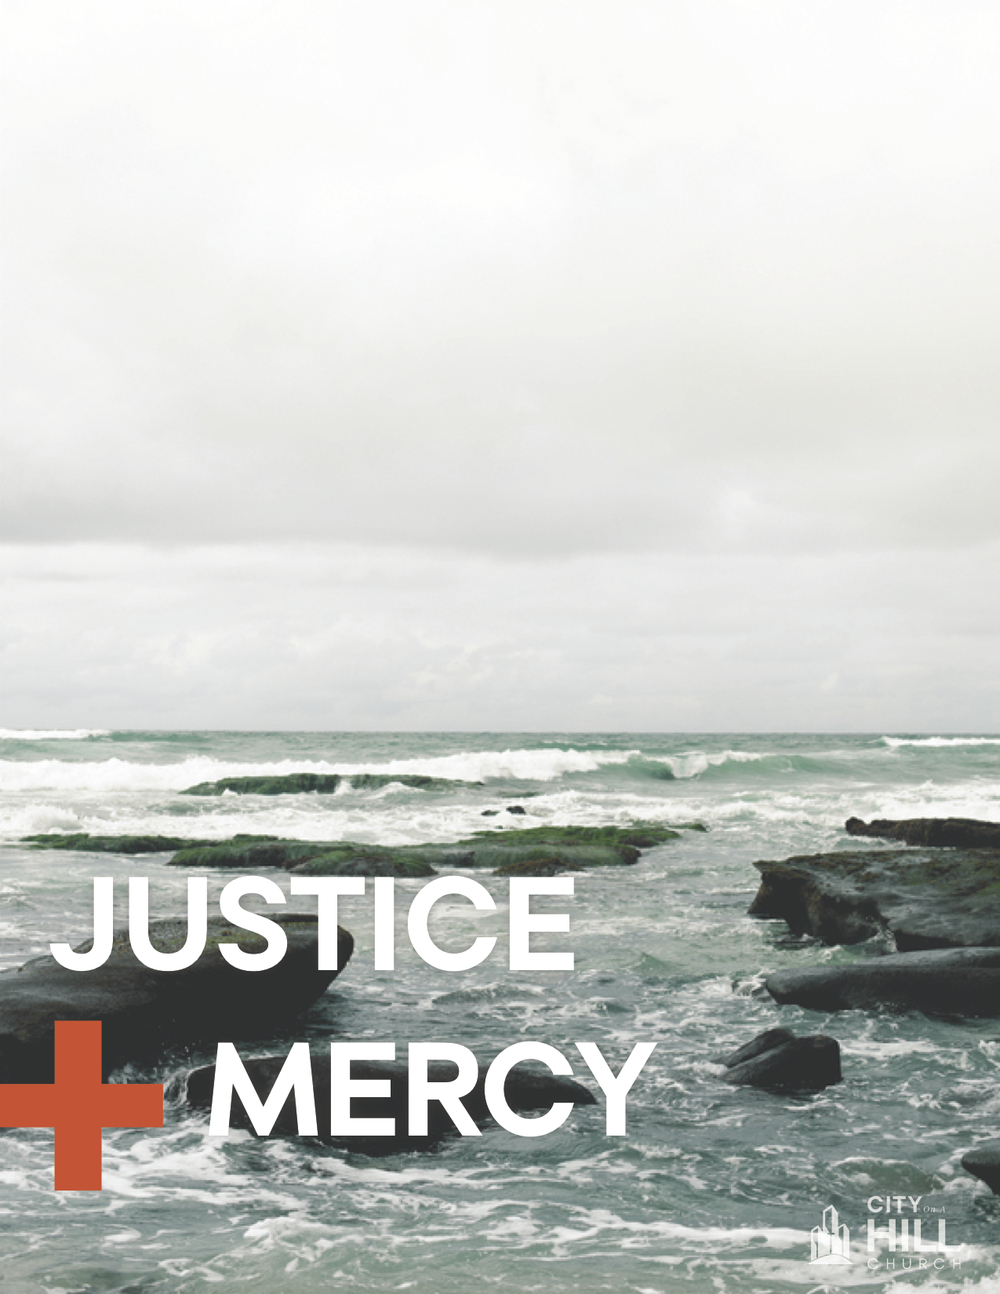 Justice_Mercy_by_CoaH.jpg